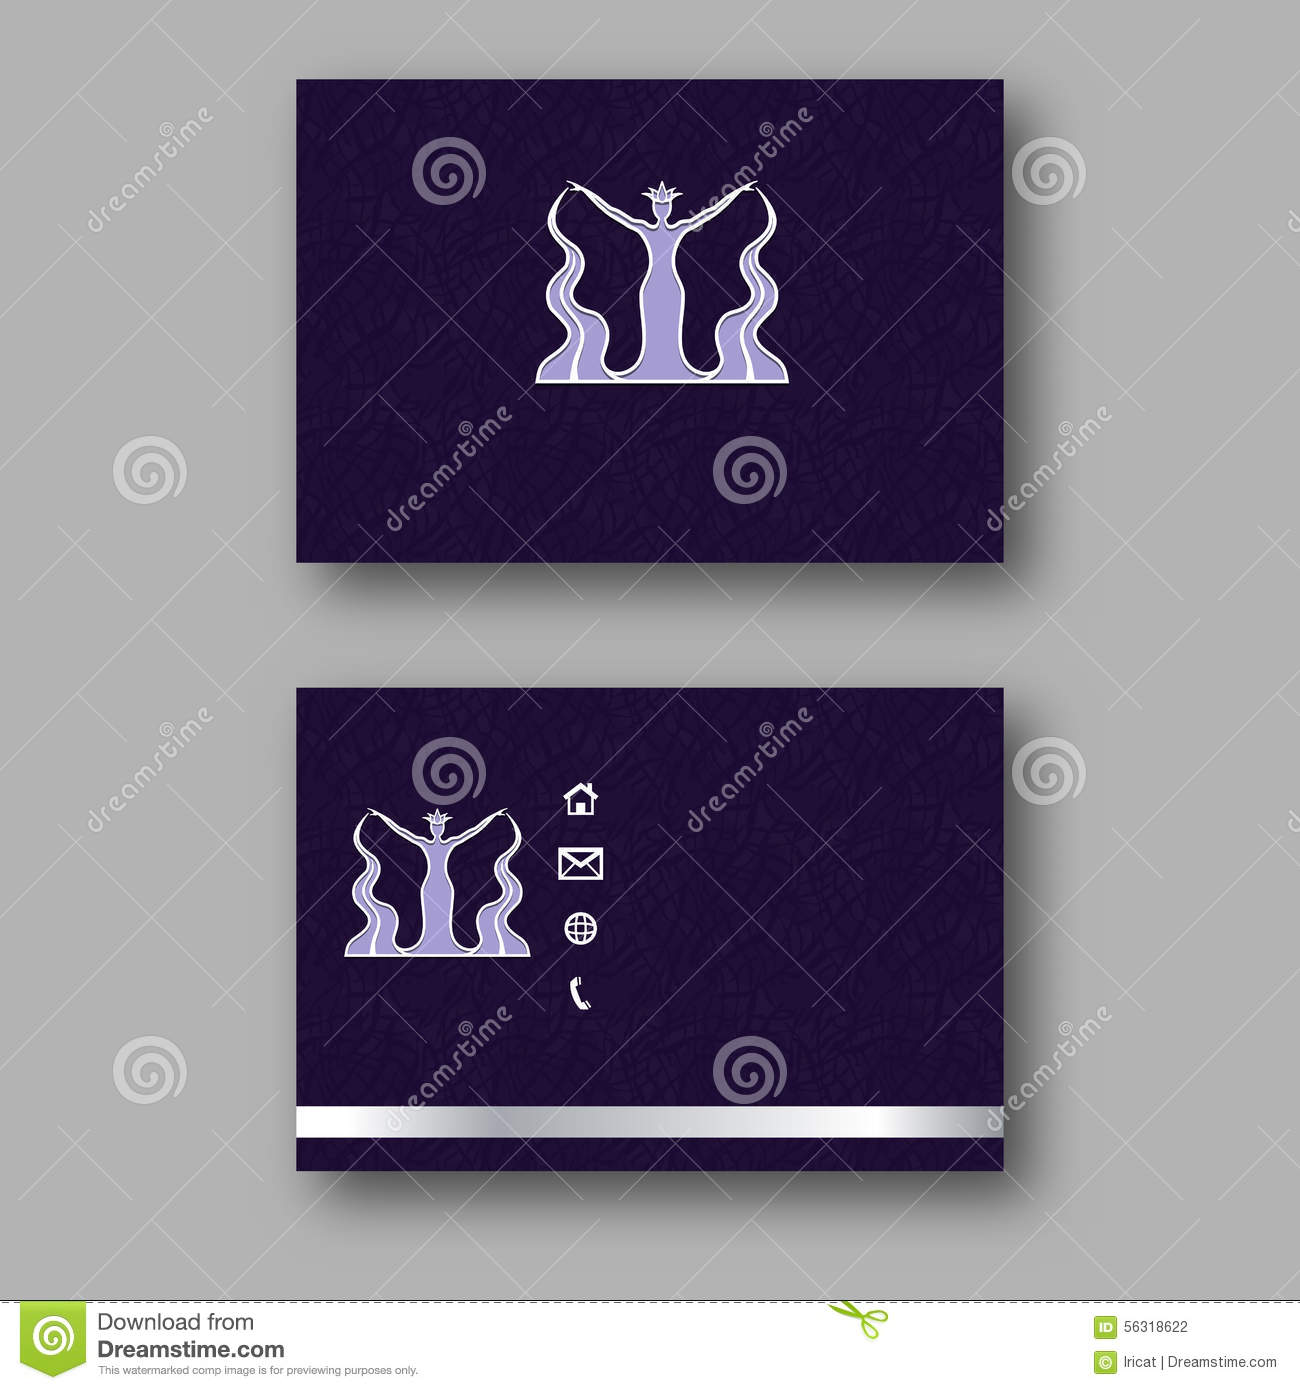 Design Business Card With Logo Of The Goddess Of Water. Calling ...